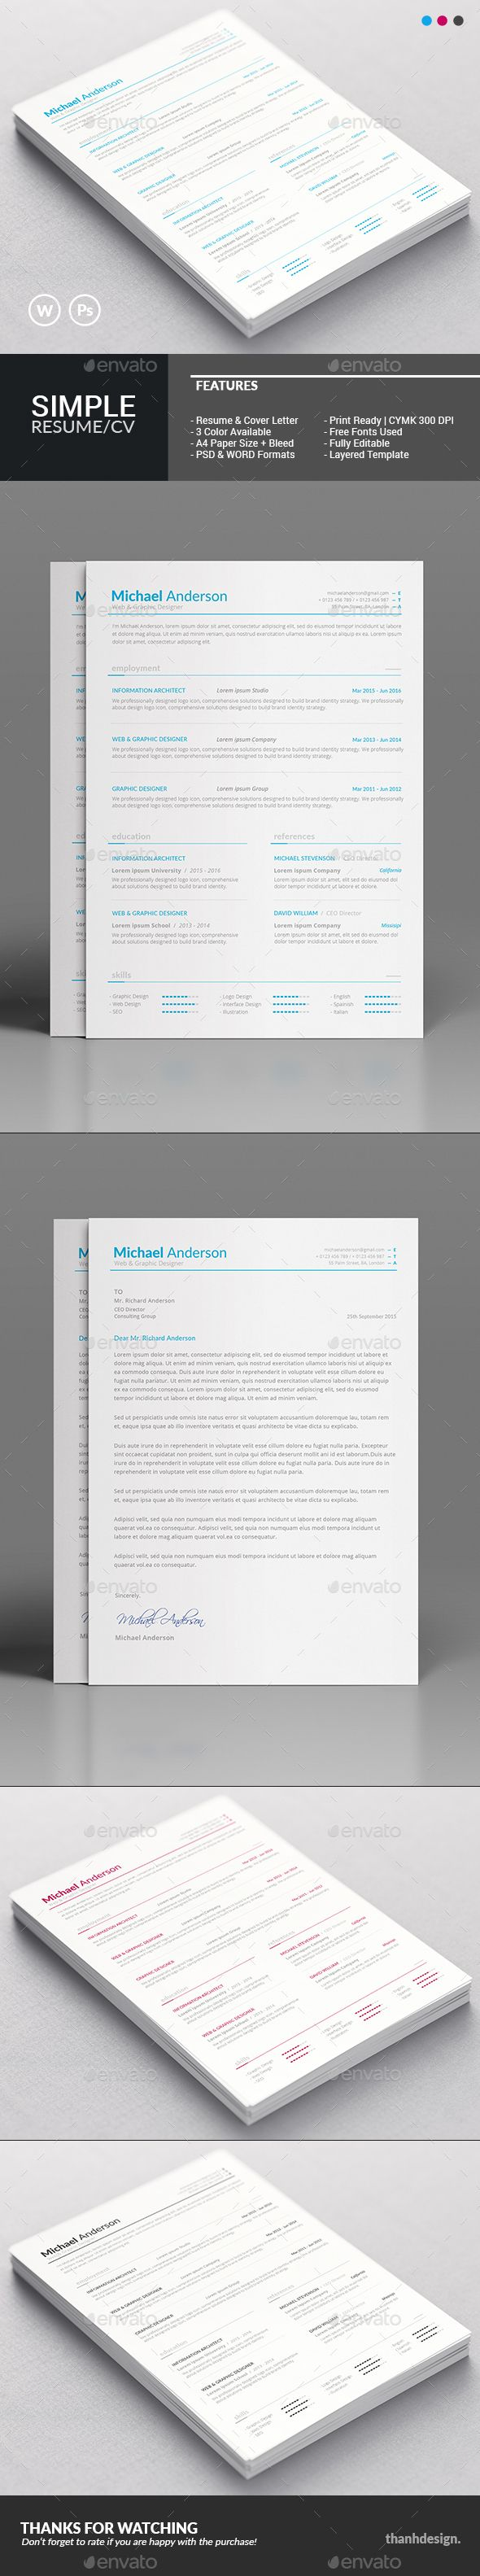 the 25 best cv cover letter ideas on pinterest creative cv template cv template and creative cv - What Is A Resume Cover Letter